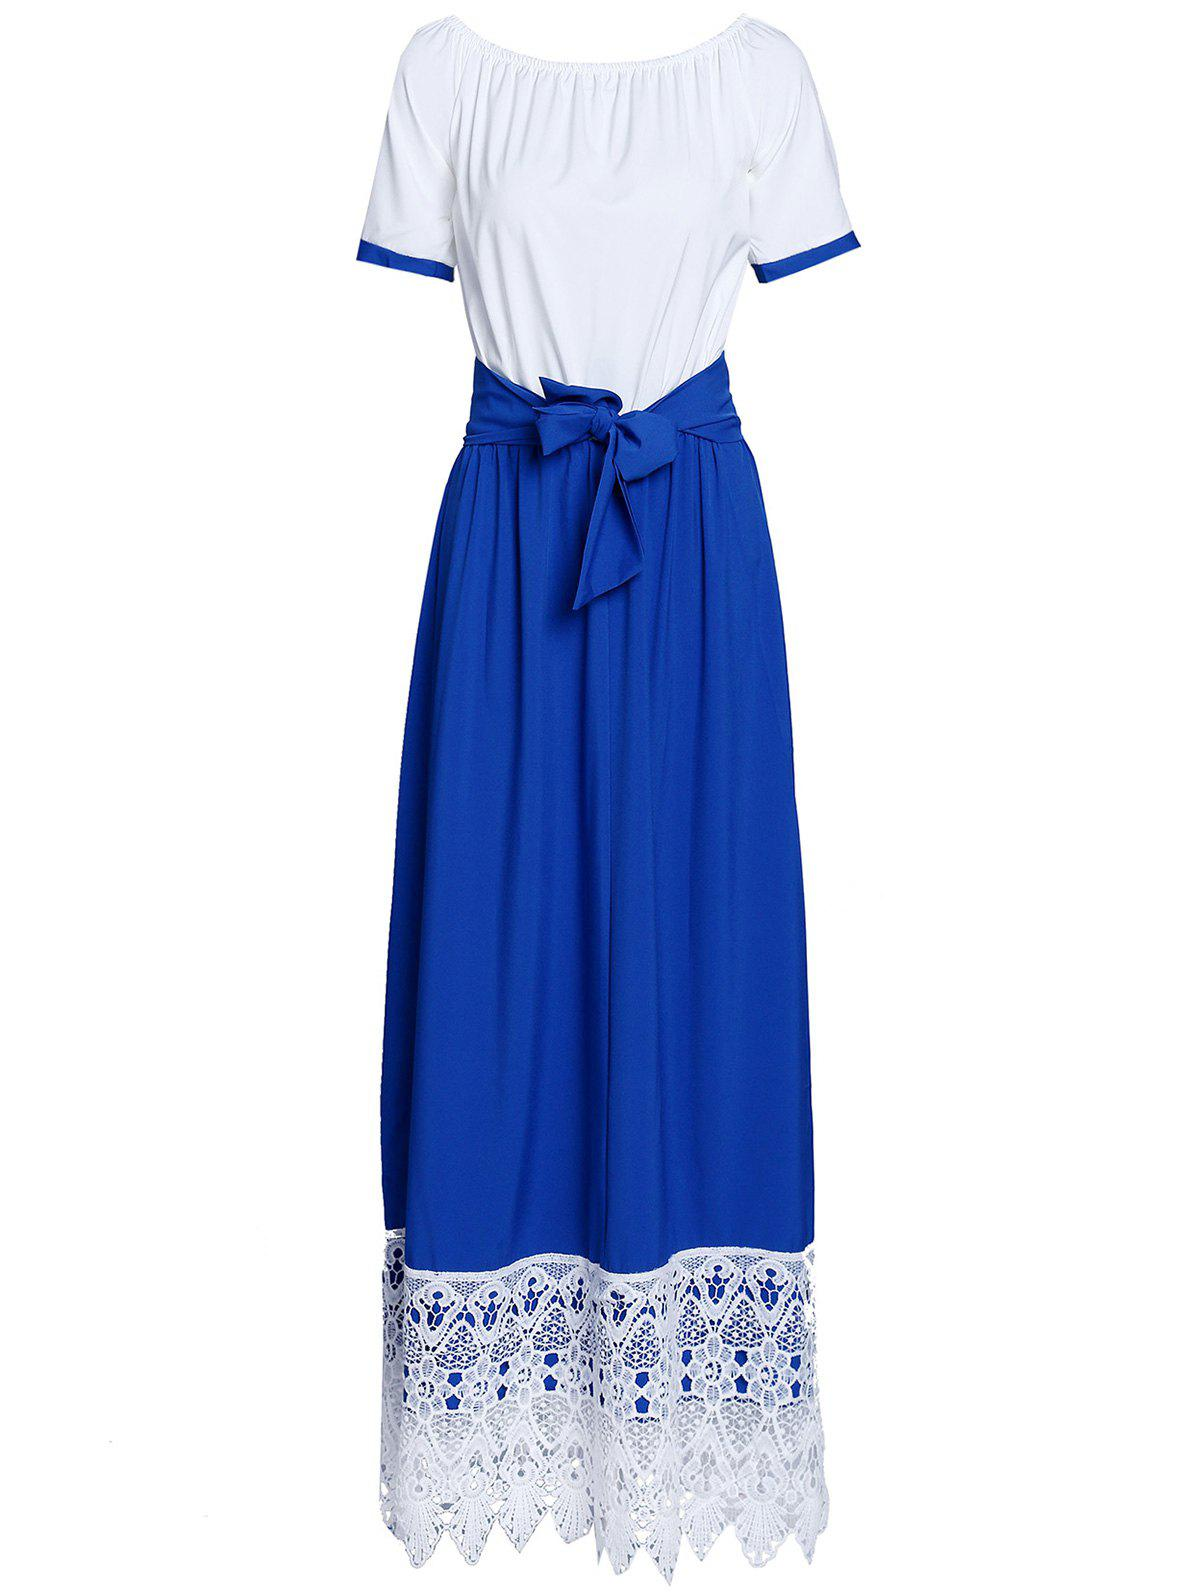 Endearing Color Block Ruffled Sleeve Lace Hem Loose Maxi Dress For Women - DEEP BLUE 3XL